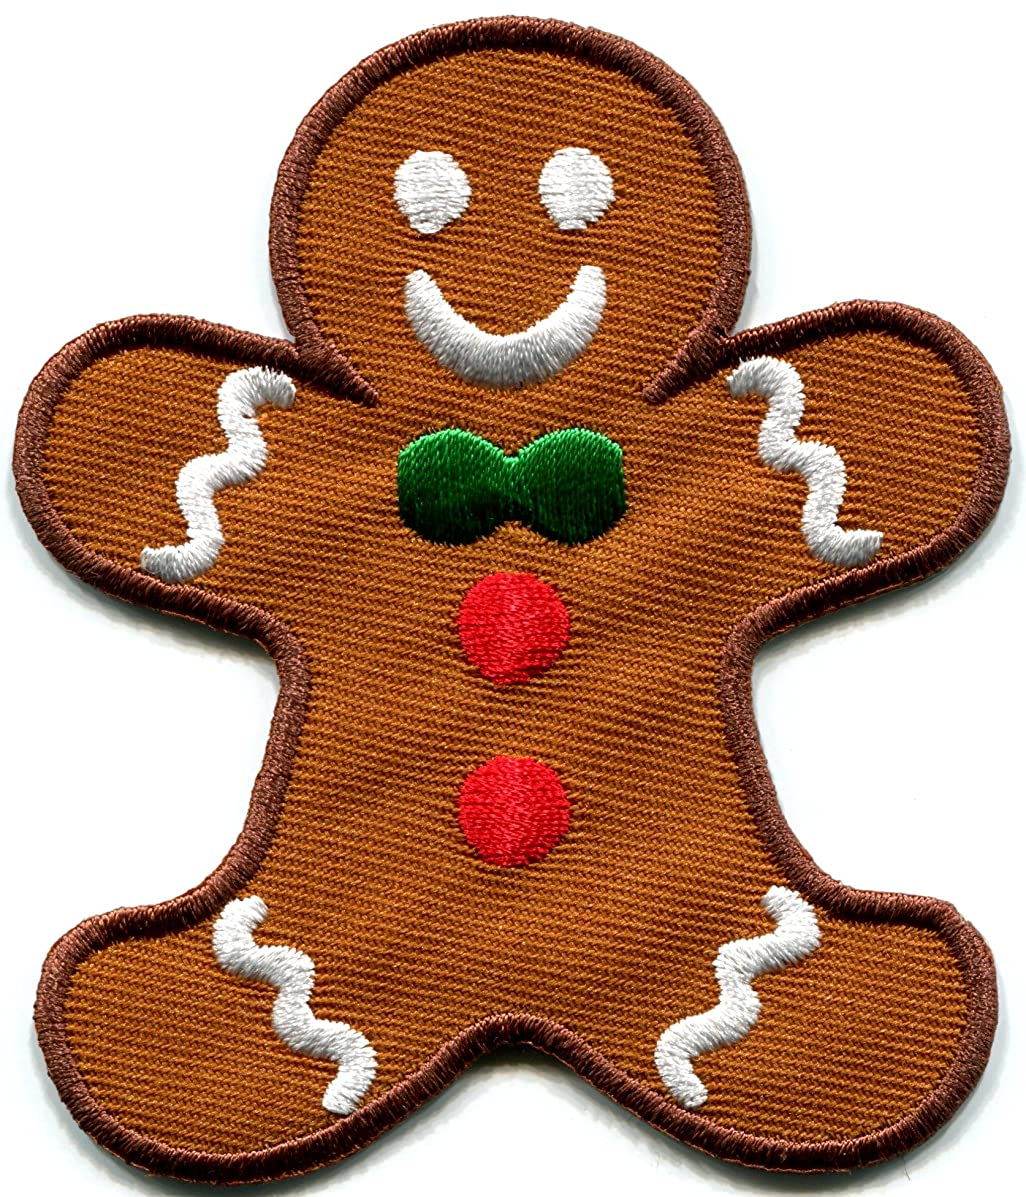 Gingerbread Man cookie kids fun sweets buscuit Christmas embroidered applique iron-on patch new